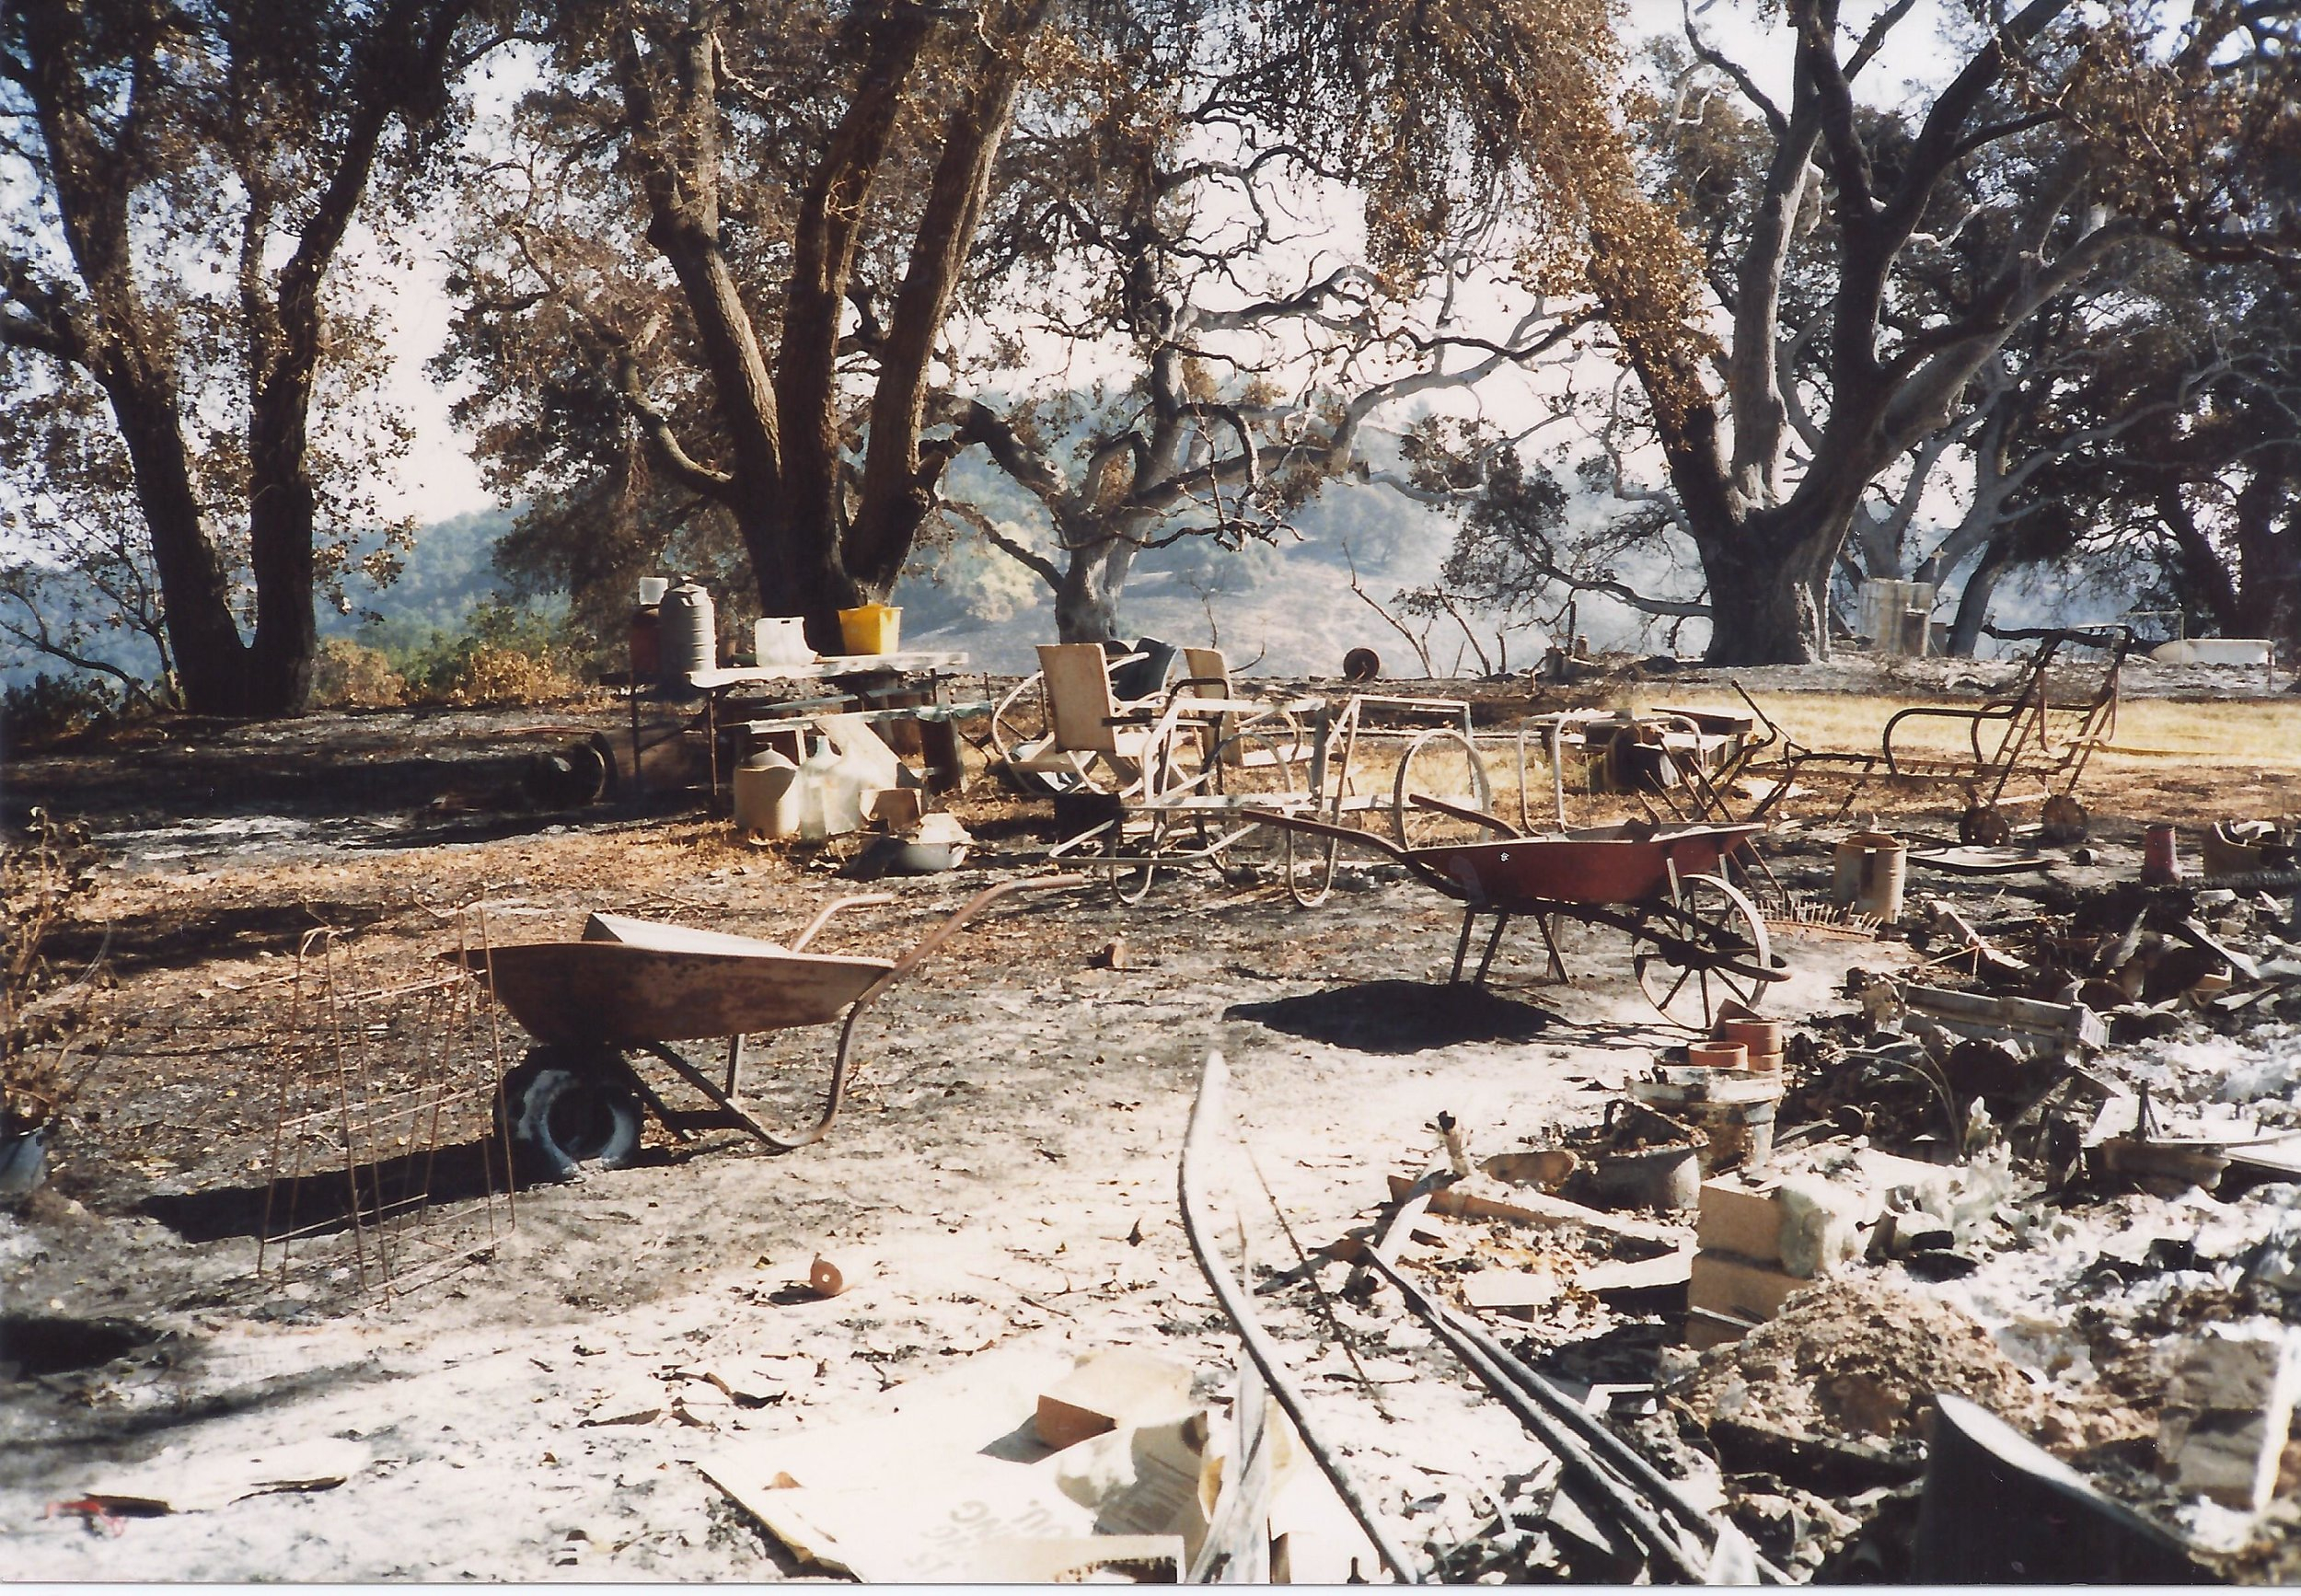 BABA'S WALKWAY is covered with ash and dirt in the days following the 1985 New Life Fire which destroyed all the buildings and machinery on the property. Over time the walkway became more obscured by dirt and weeds. (Photo: Sam Ervin, October 1985)